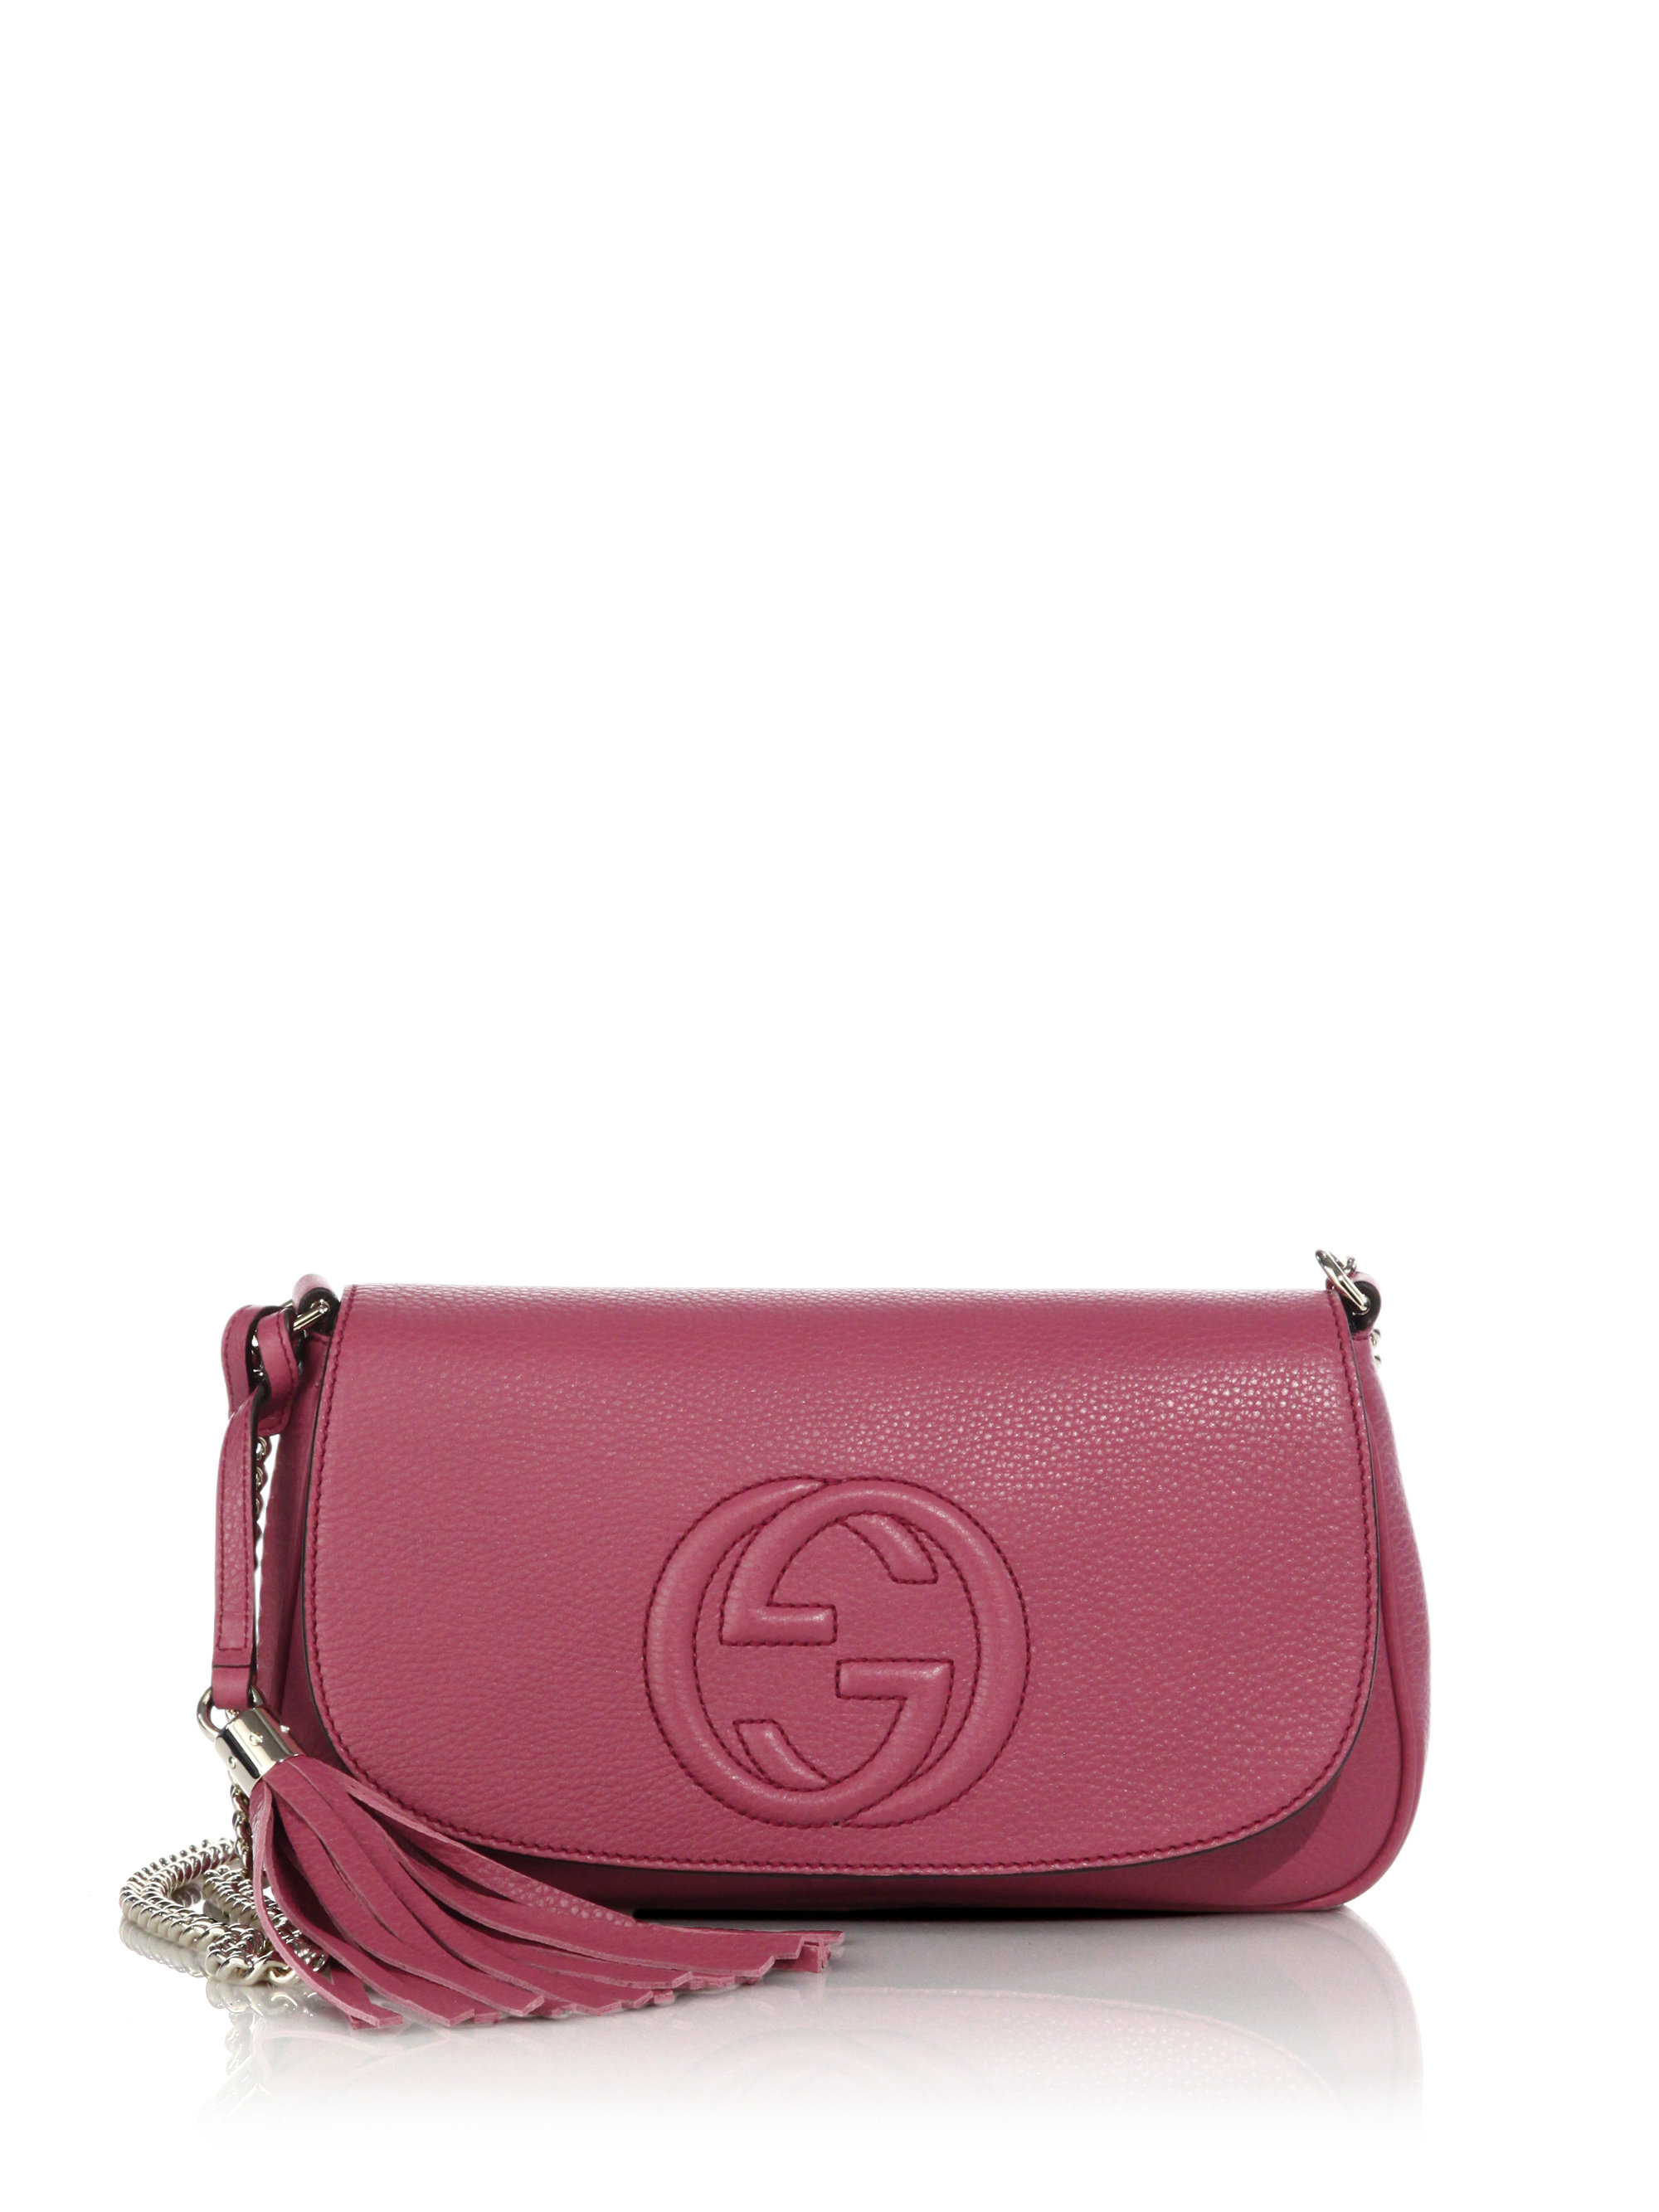 Lyst - Gucci Soho Leather Shoulder Bag in Pink Michael Kors Pink Crossbody Bags